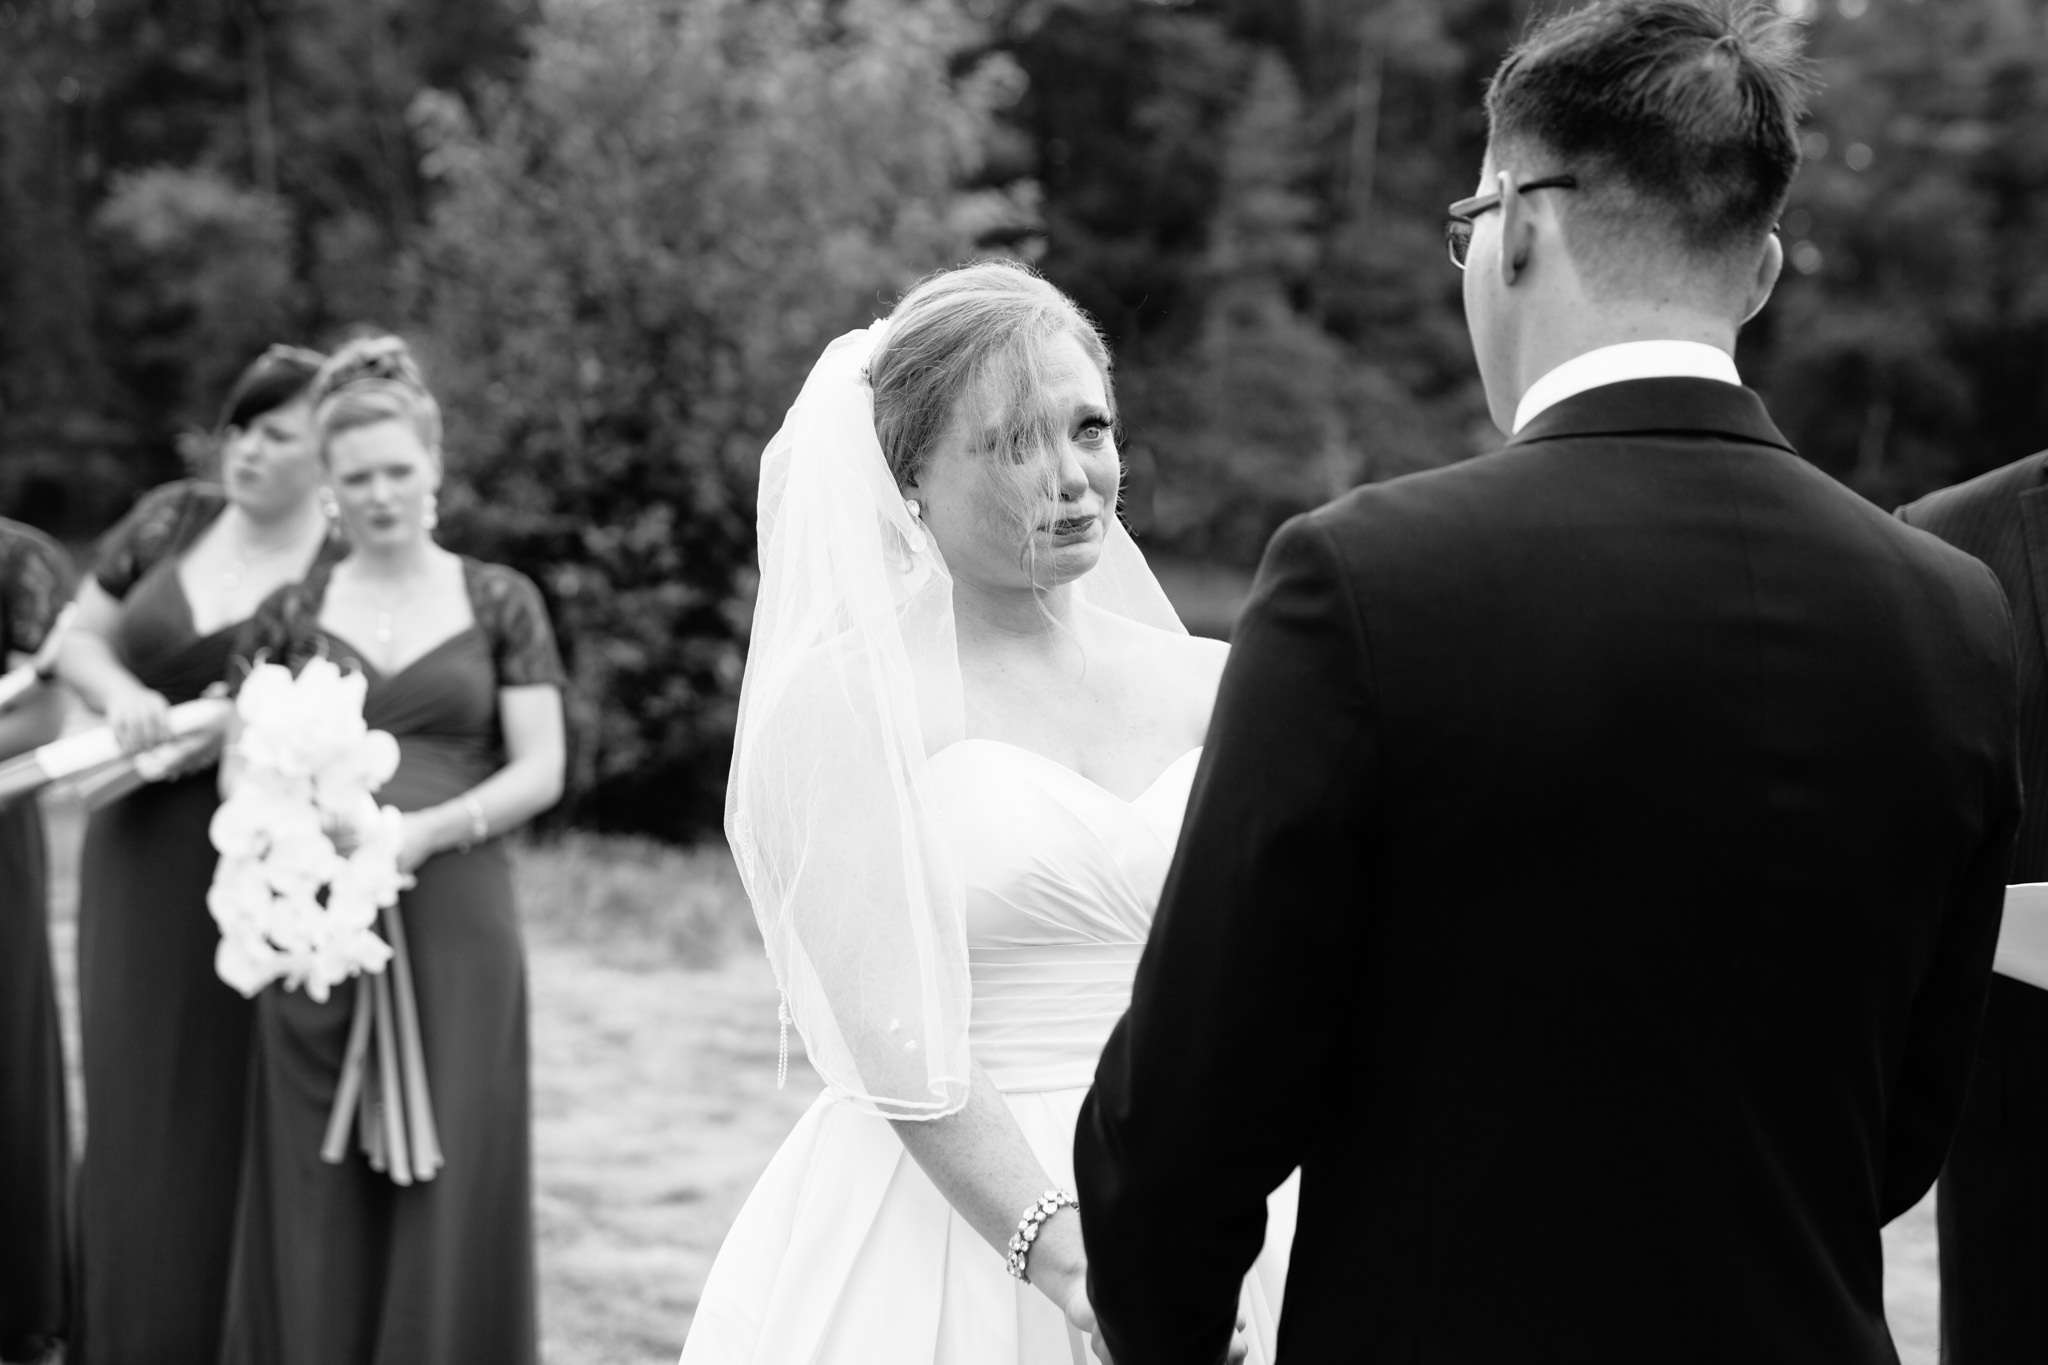 bride tearing up during vows at wedding ceremony